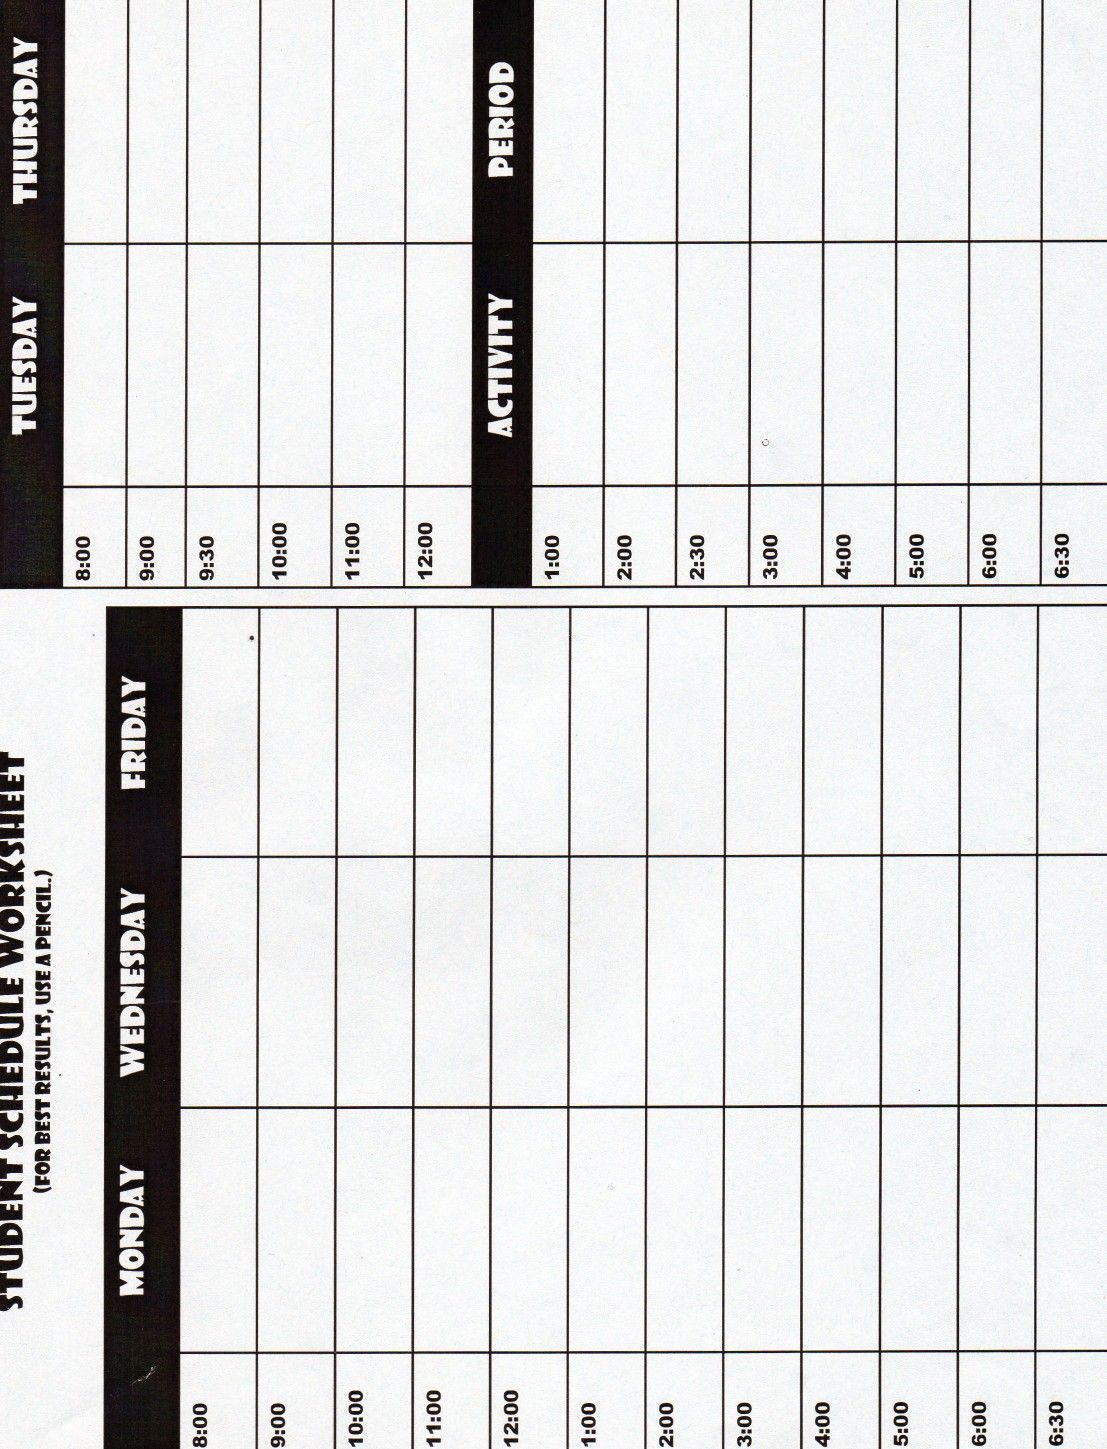 Schedule With Images